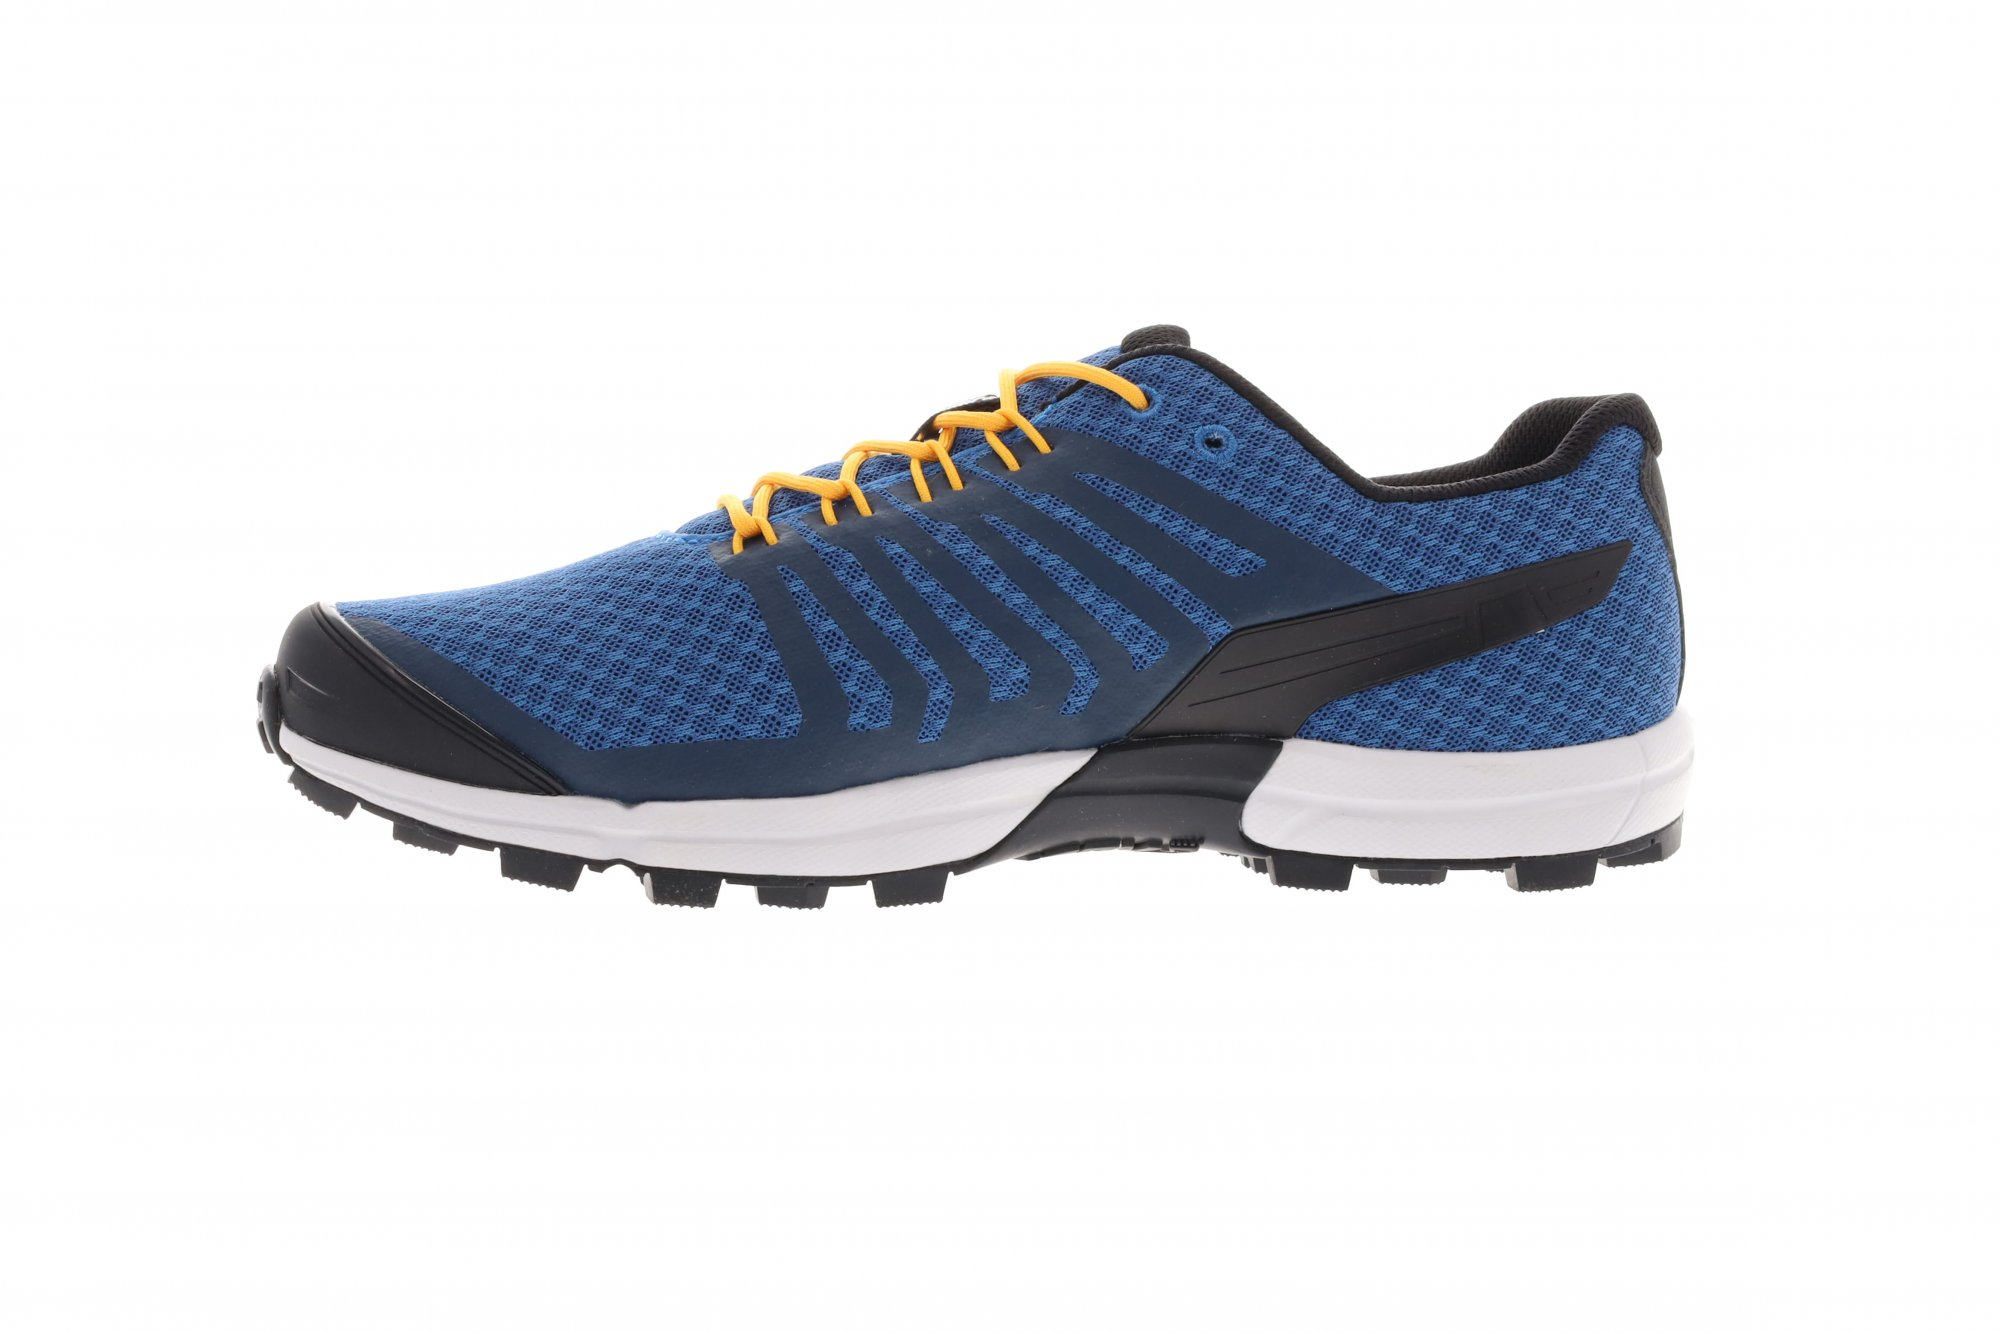 INOV-8 ROCLITE 290 M (M) blue/yellow